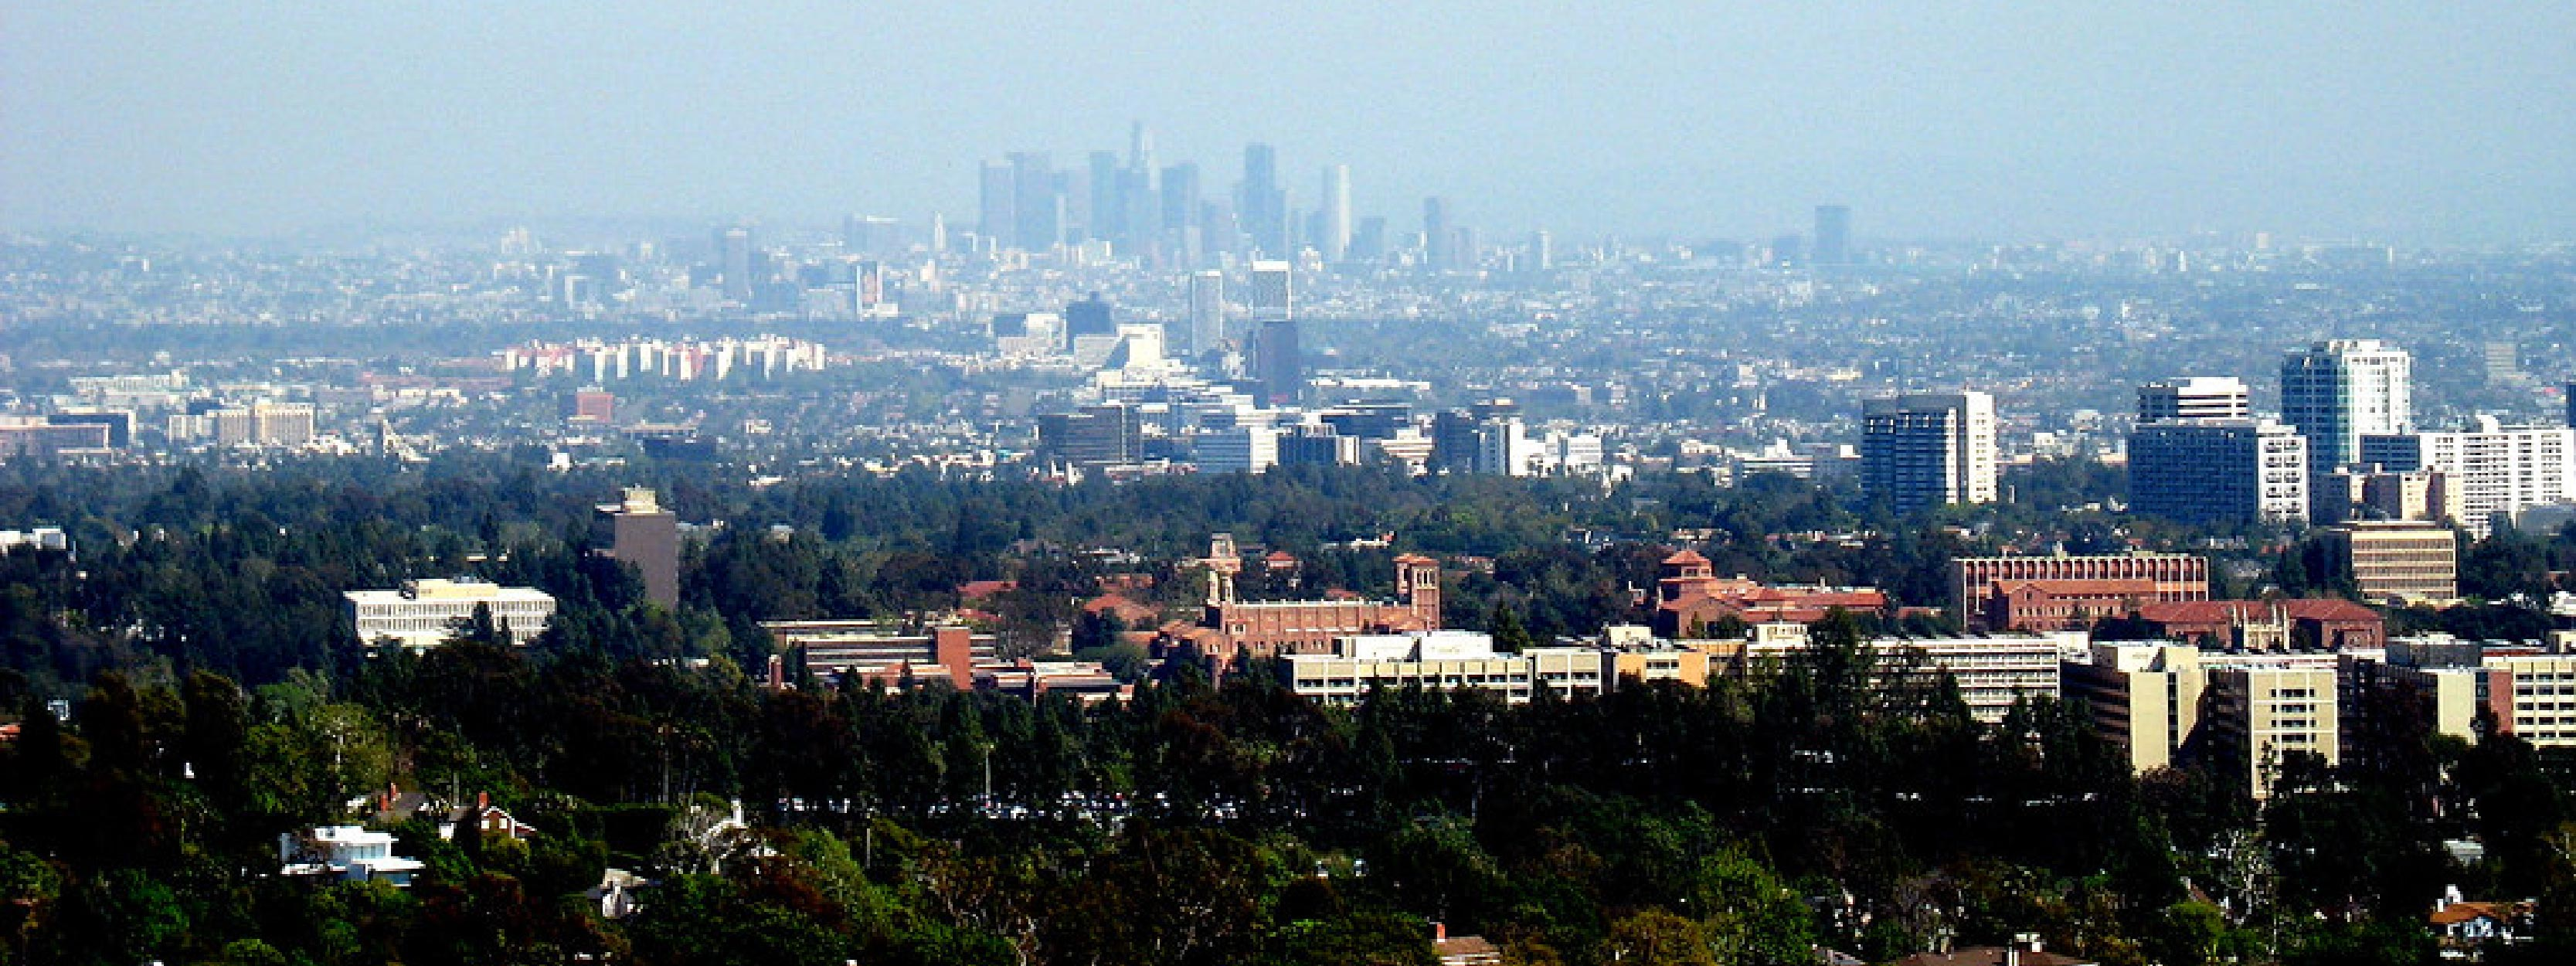 6 Reasons to Live in Westwood, Los Angeles